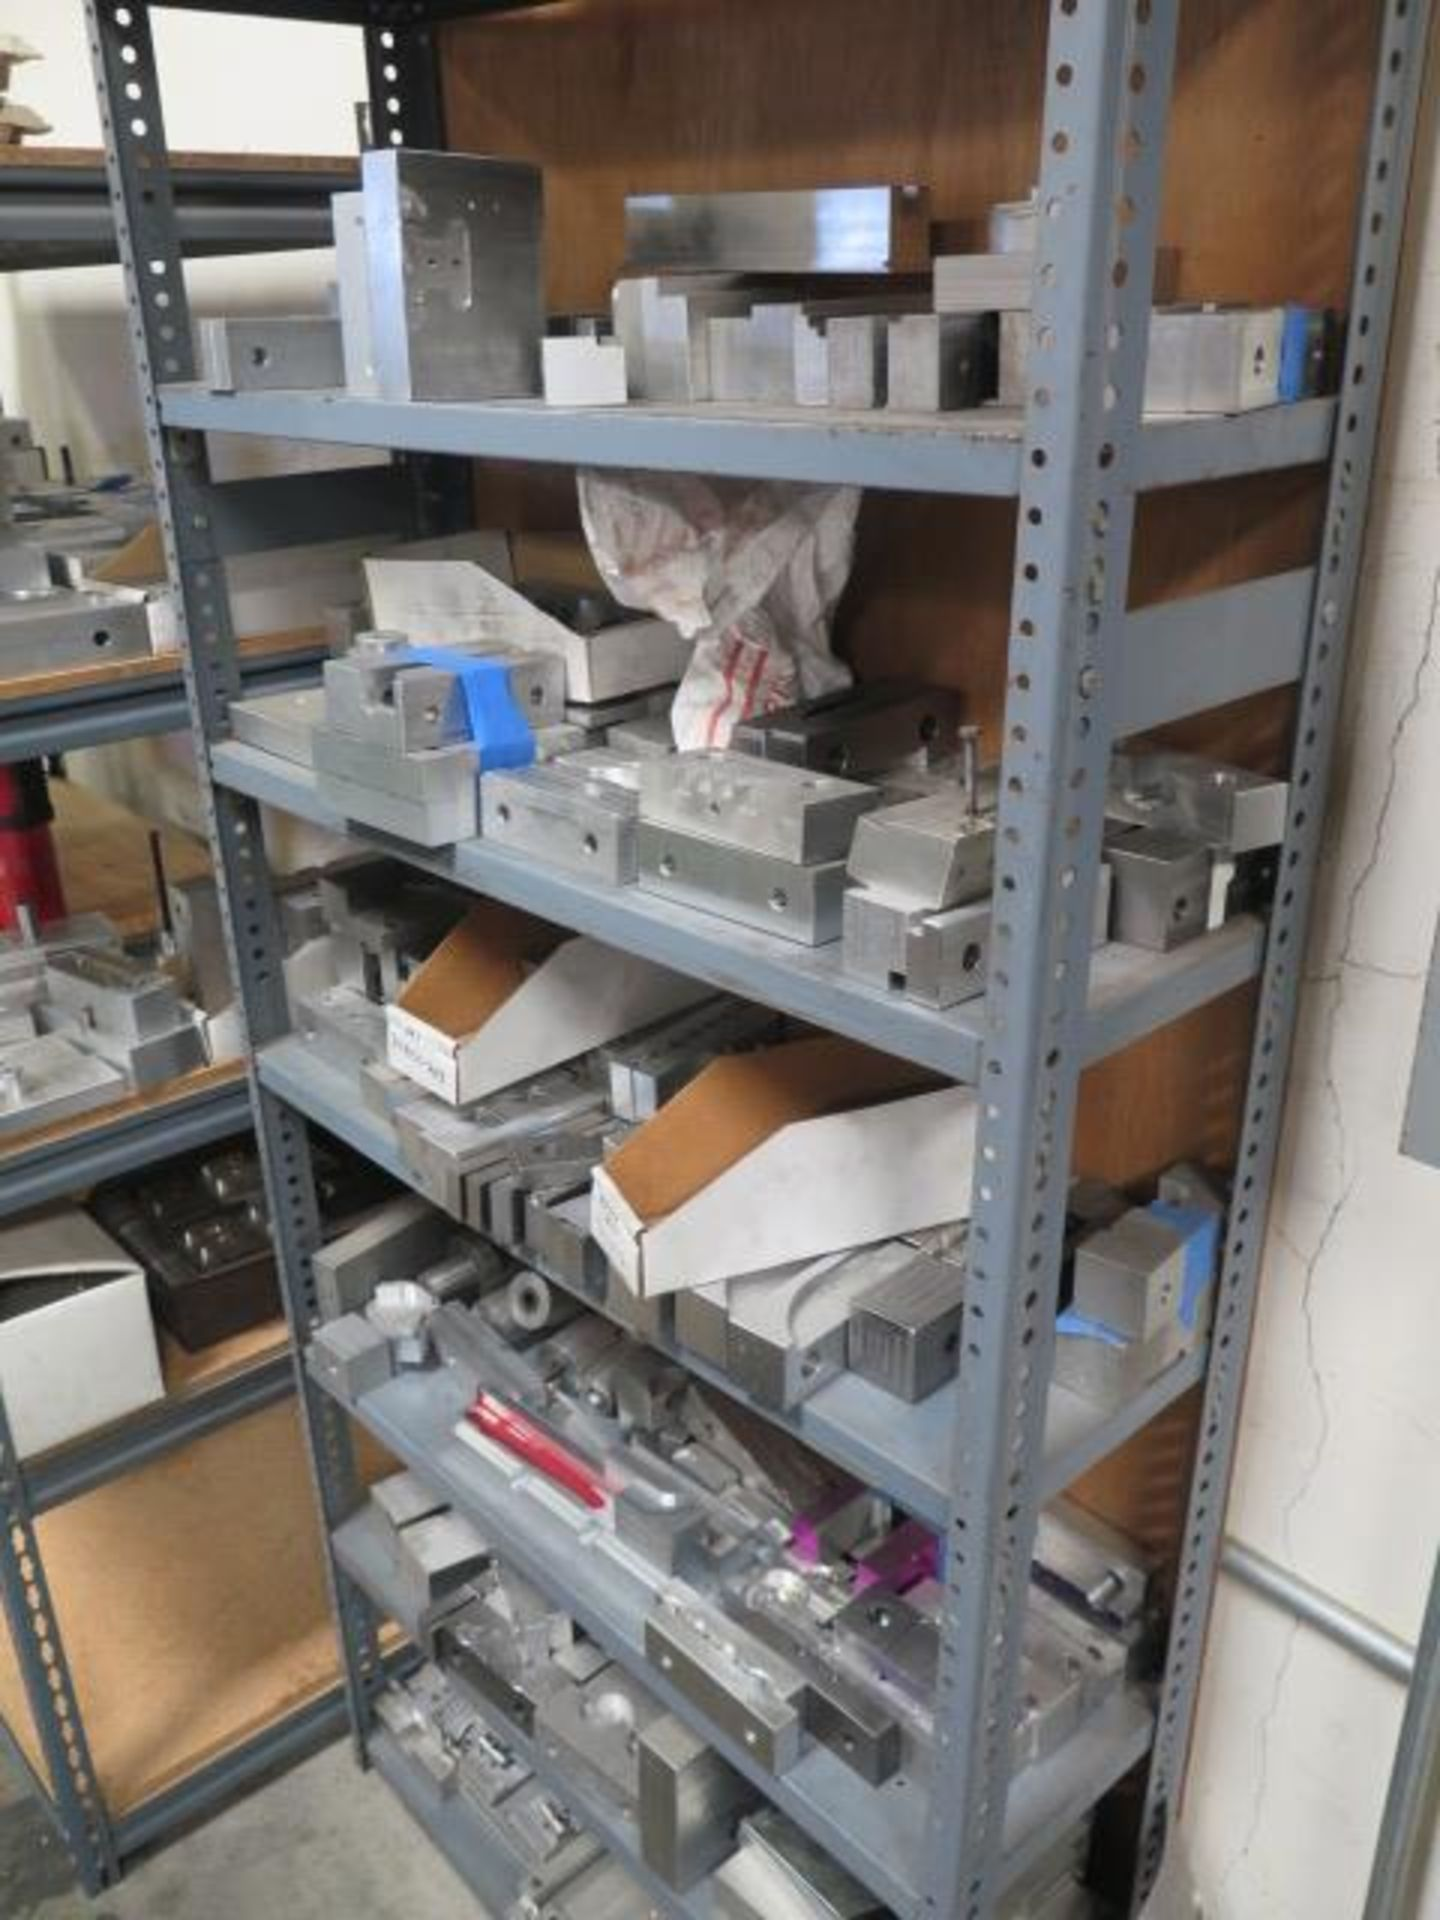 Vise Jaws, Fixtures and Misc w/ (7) Shelves (SOLD AS-IS - NO WARRANTY) - Image 4 of 6